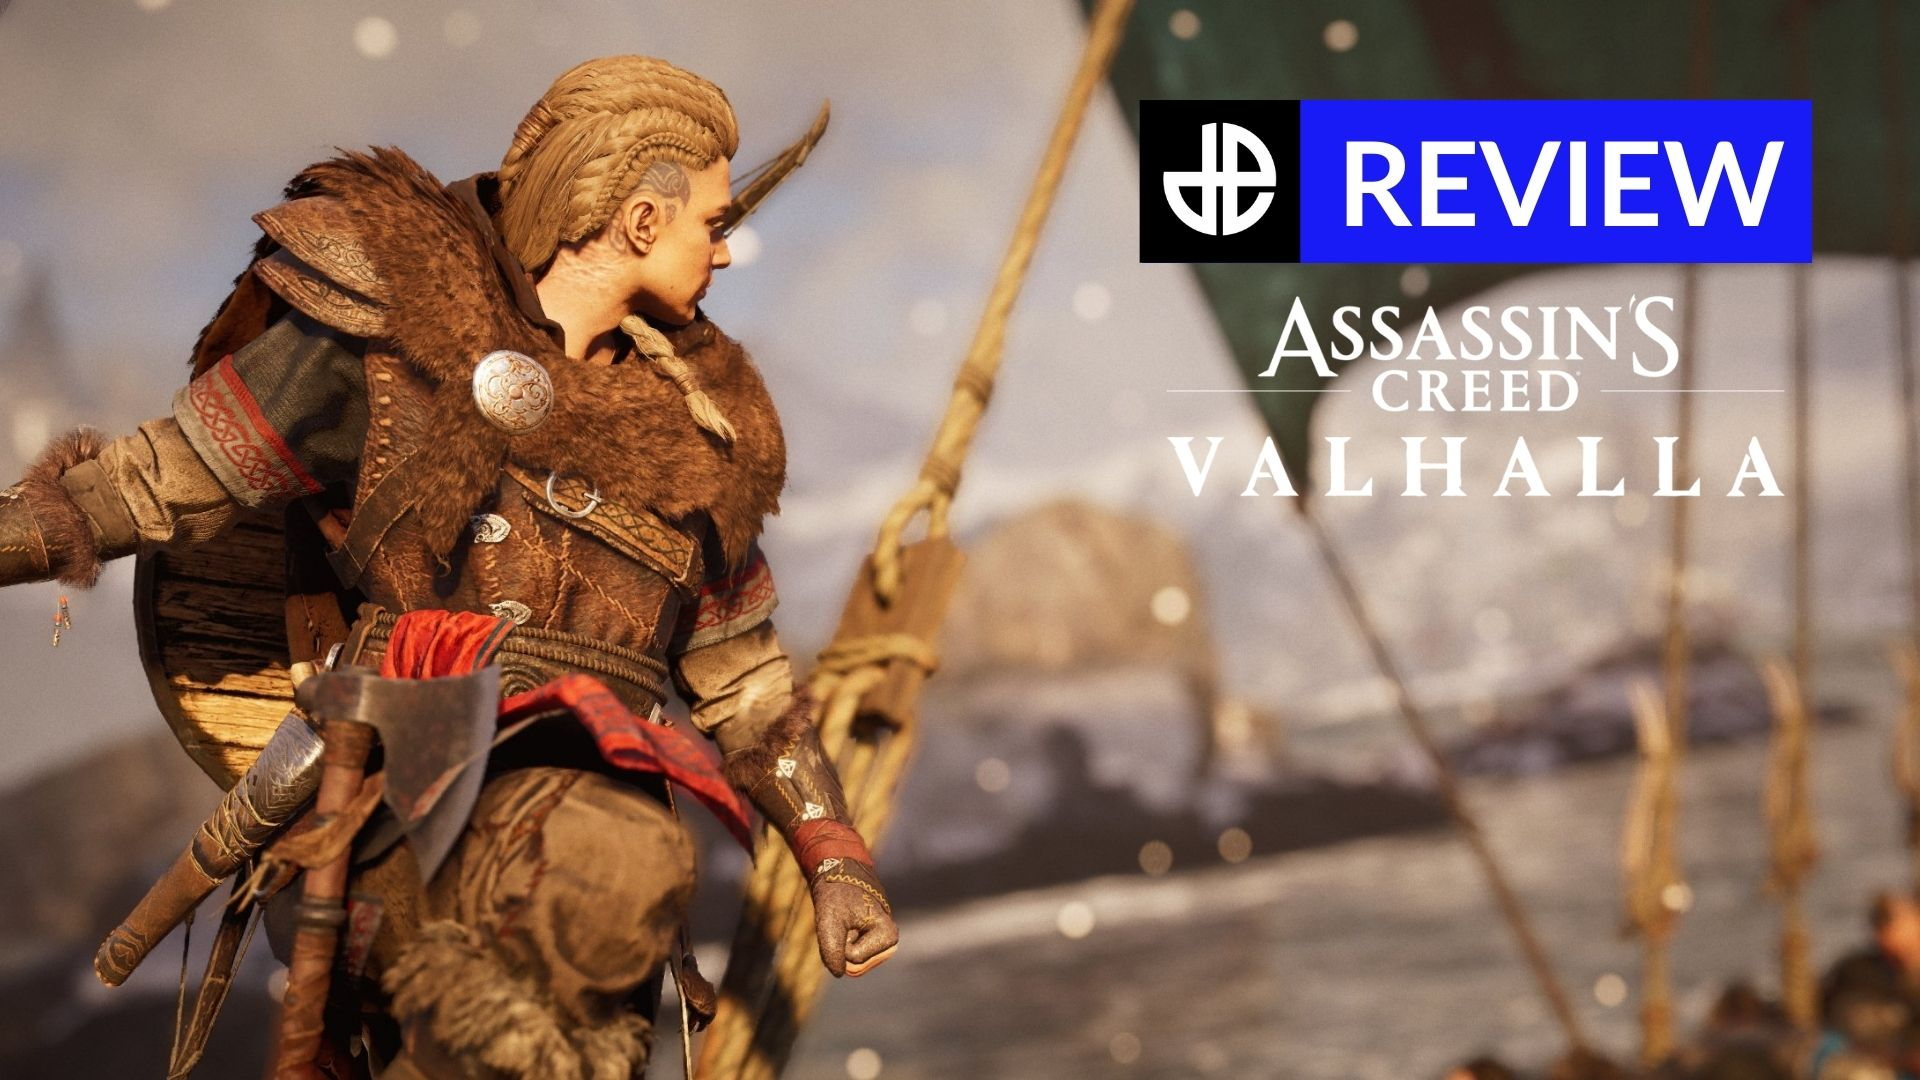 Assassin's Creed Valhalla review image